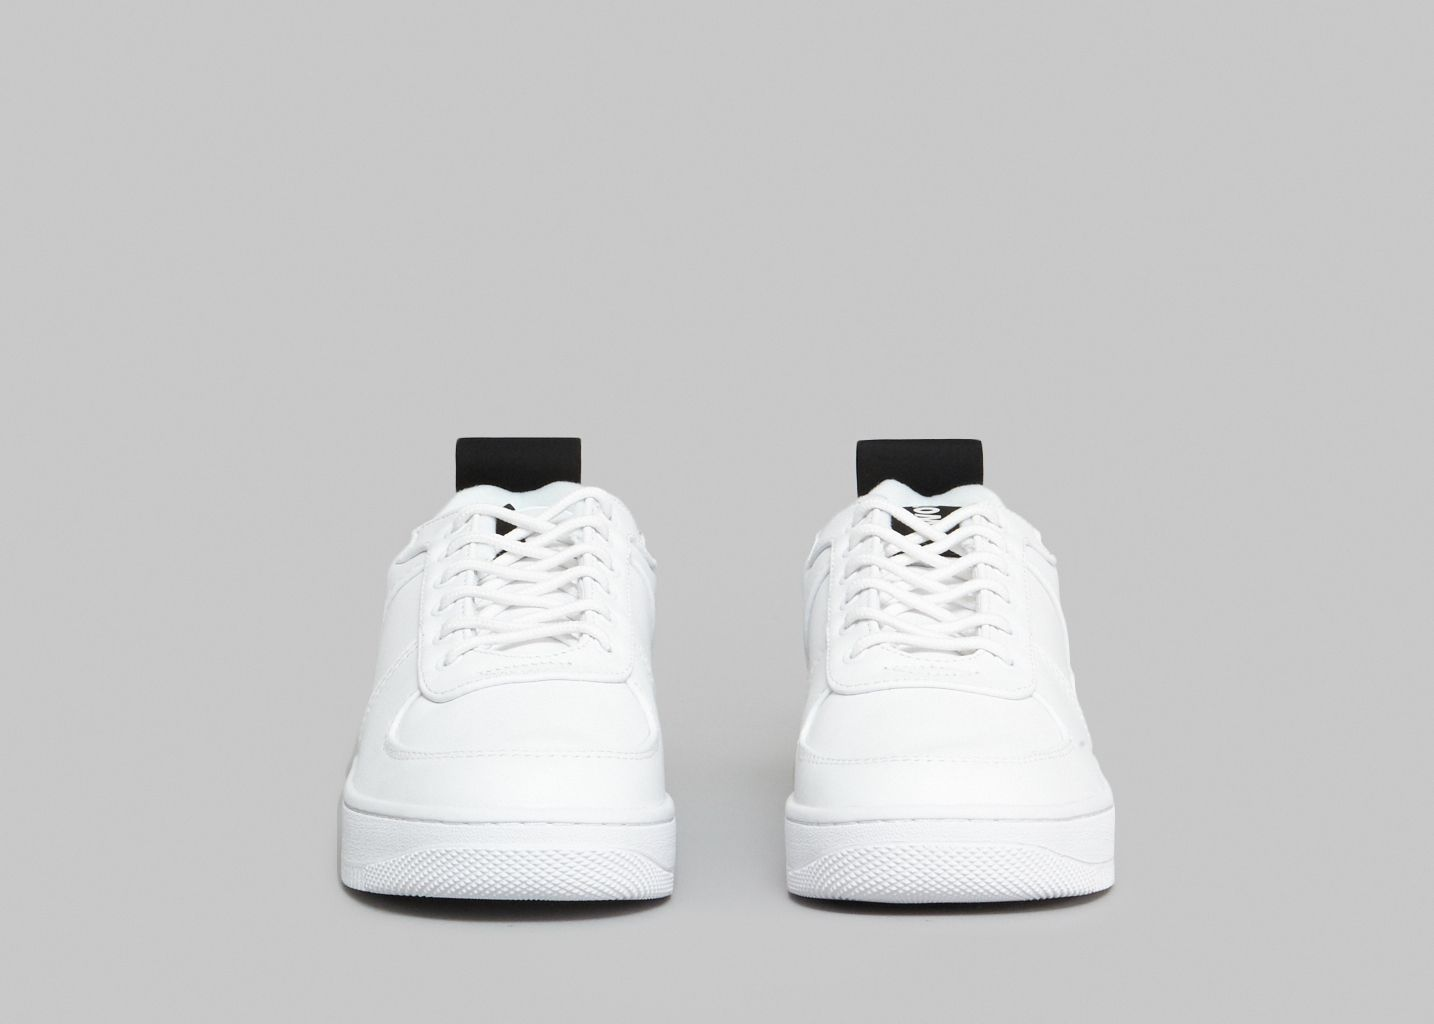 Sneakers Master Less/More - Kwots